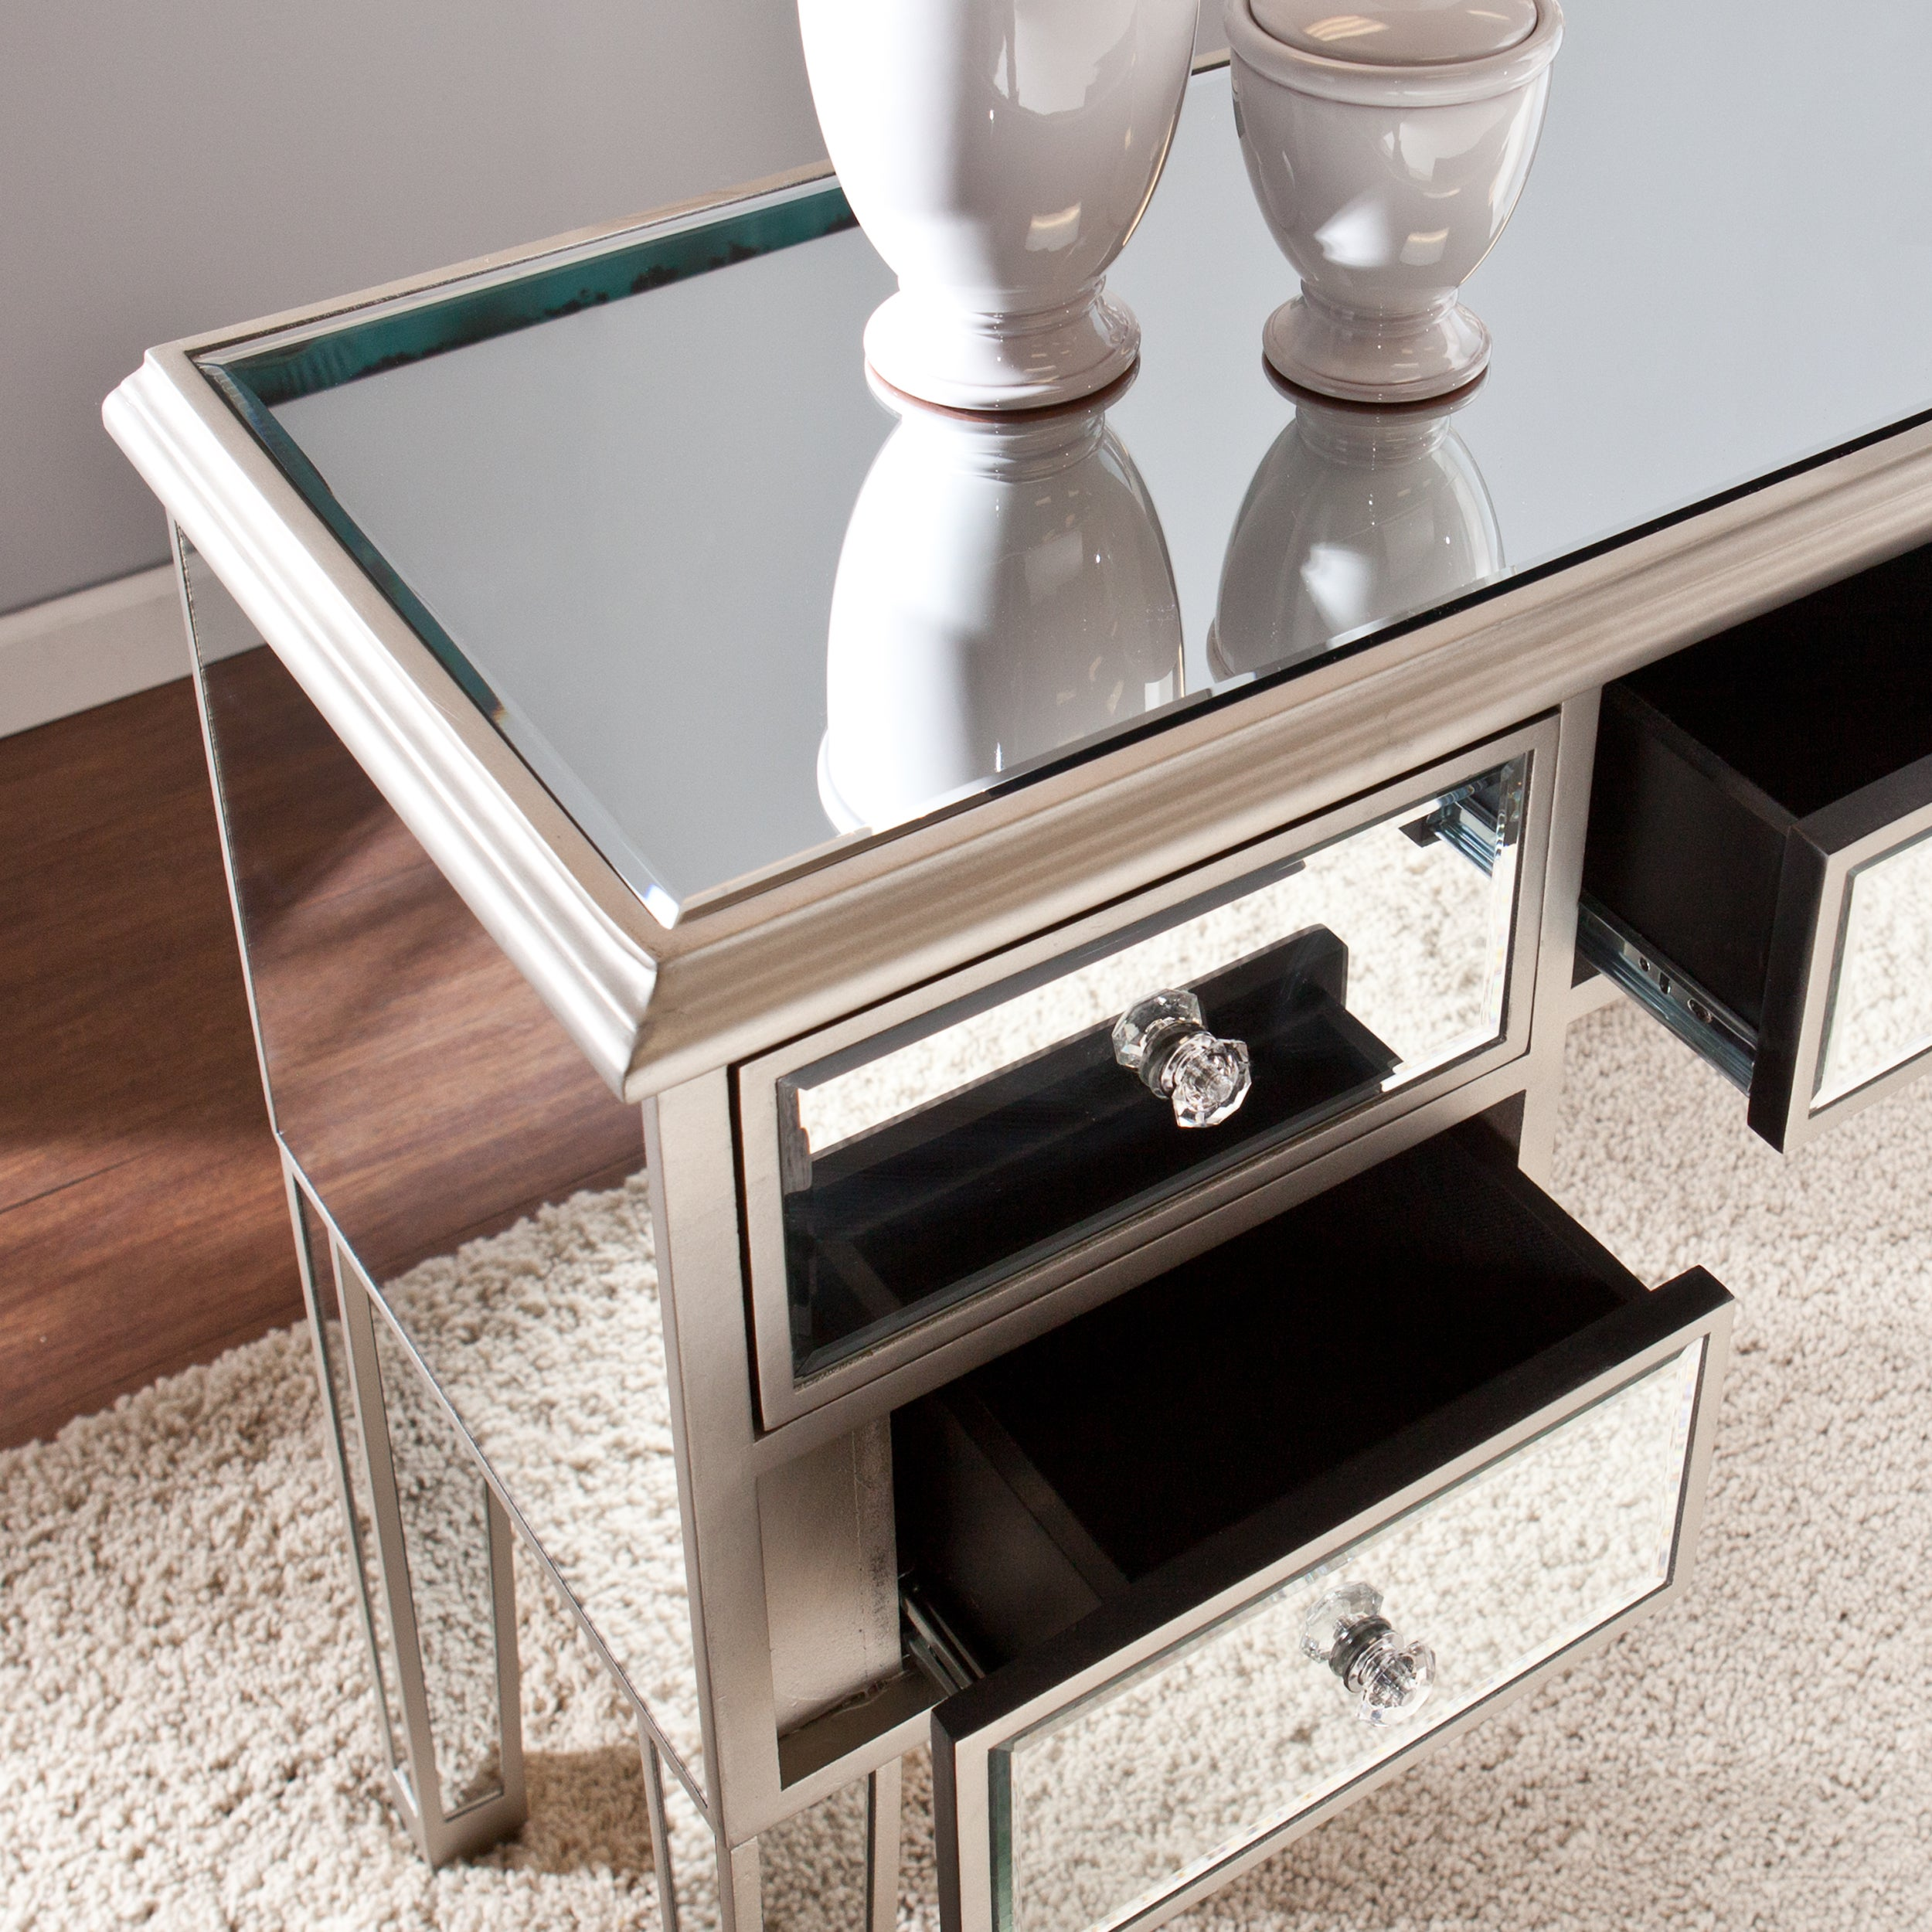 mirror console table. Silver Orchid Olivia Mirrored Console Table - Free Shipping Today Overstock 16678135 Mirror